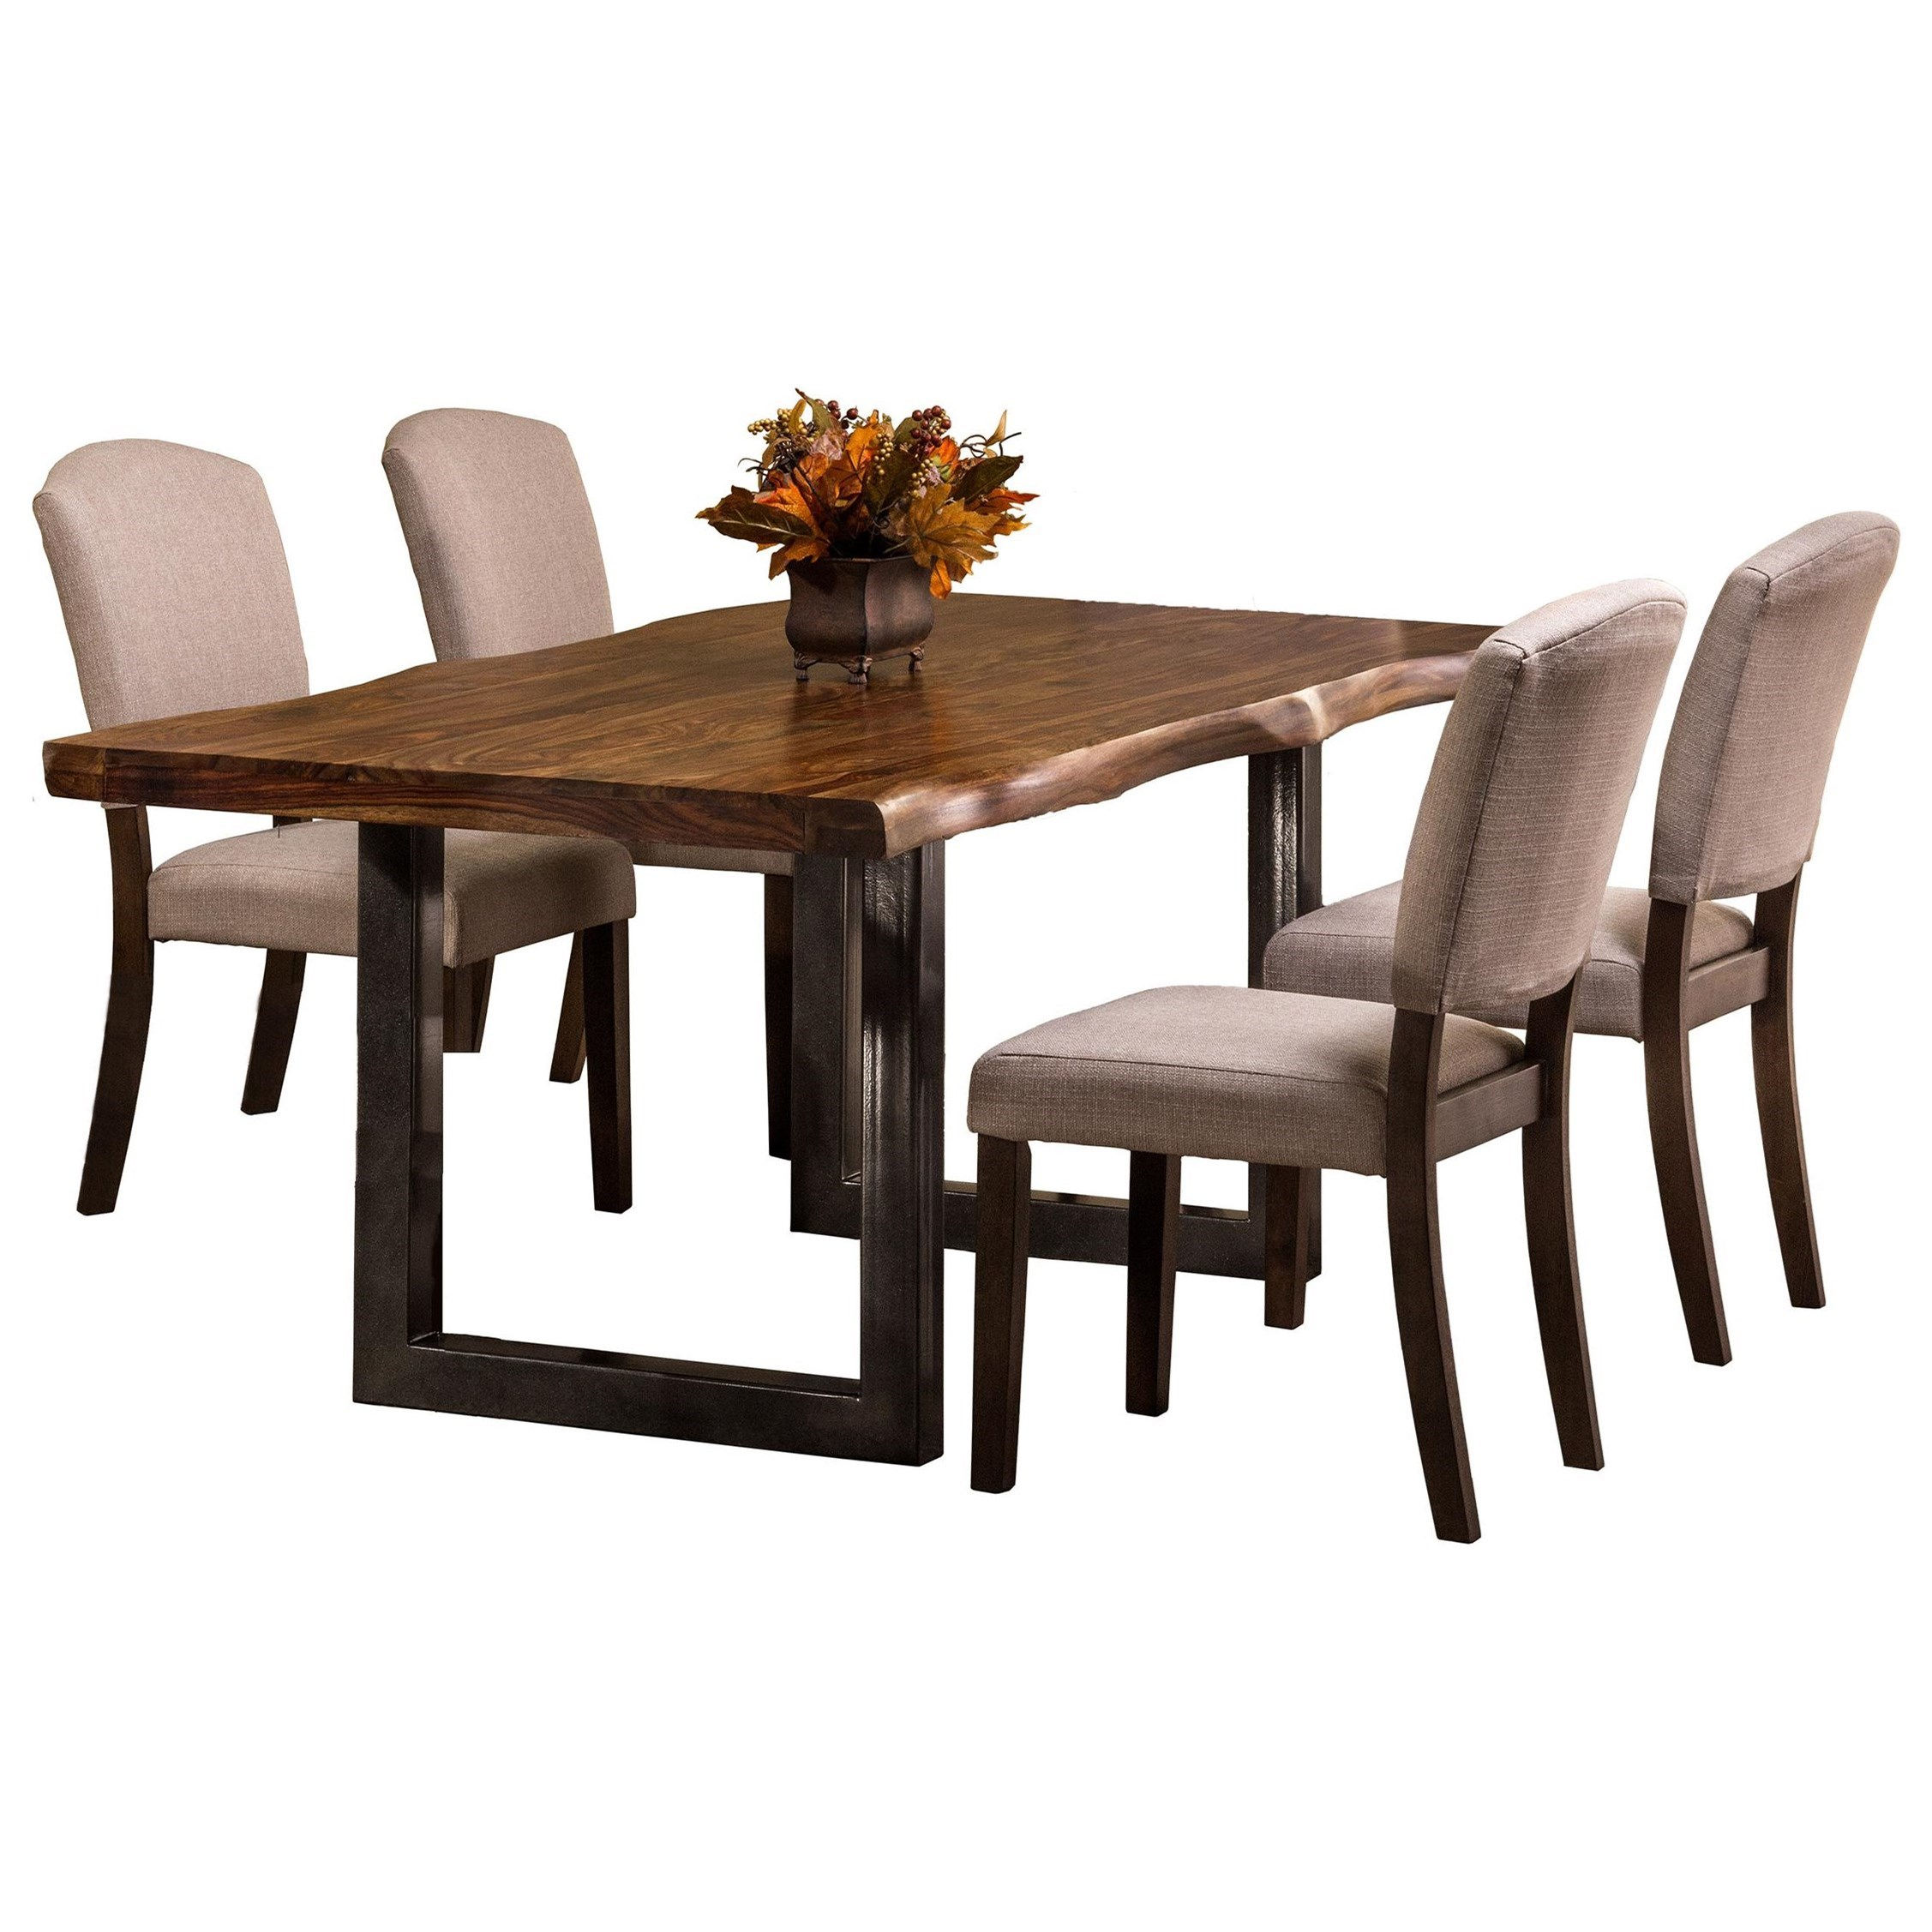 Rectangle Dining Room Tables: Natural Sheesham Wood Rectangular Dining Table By